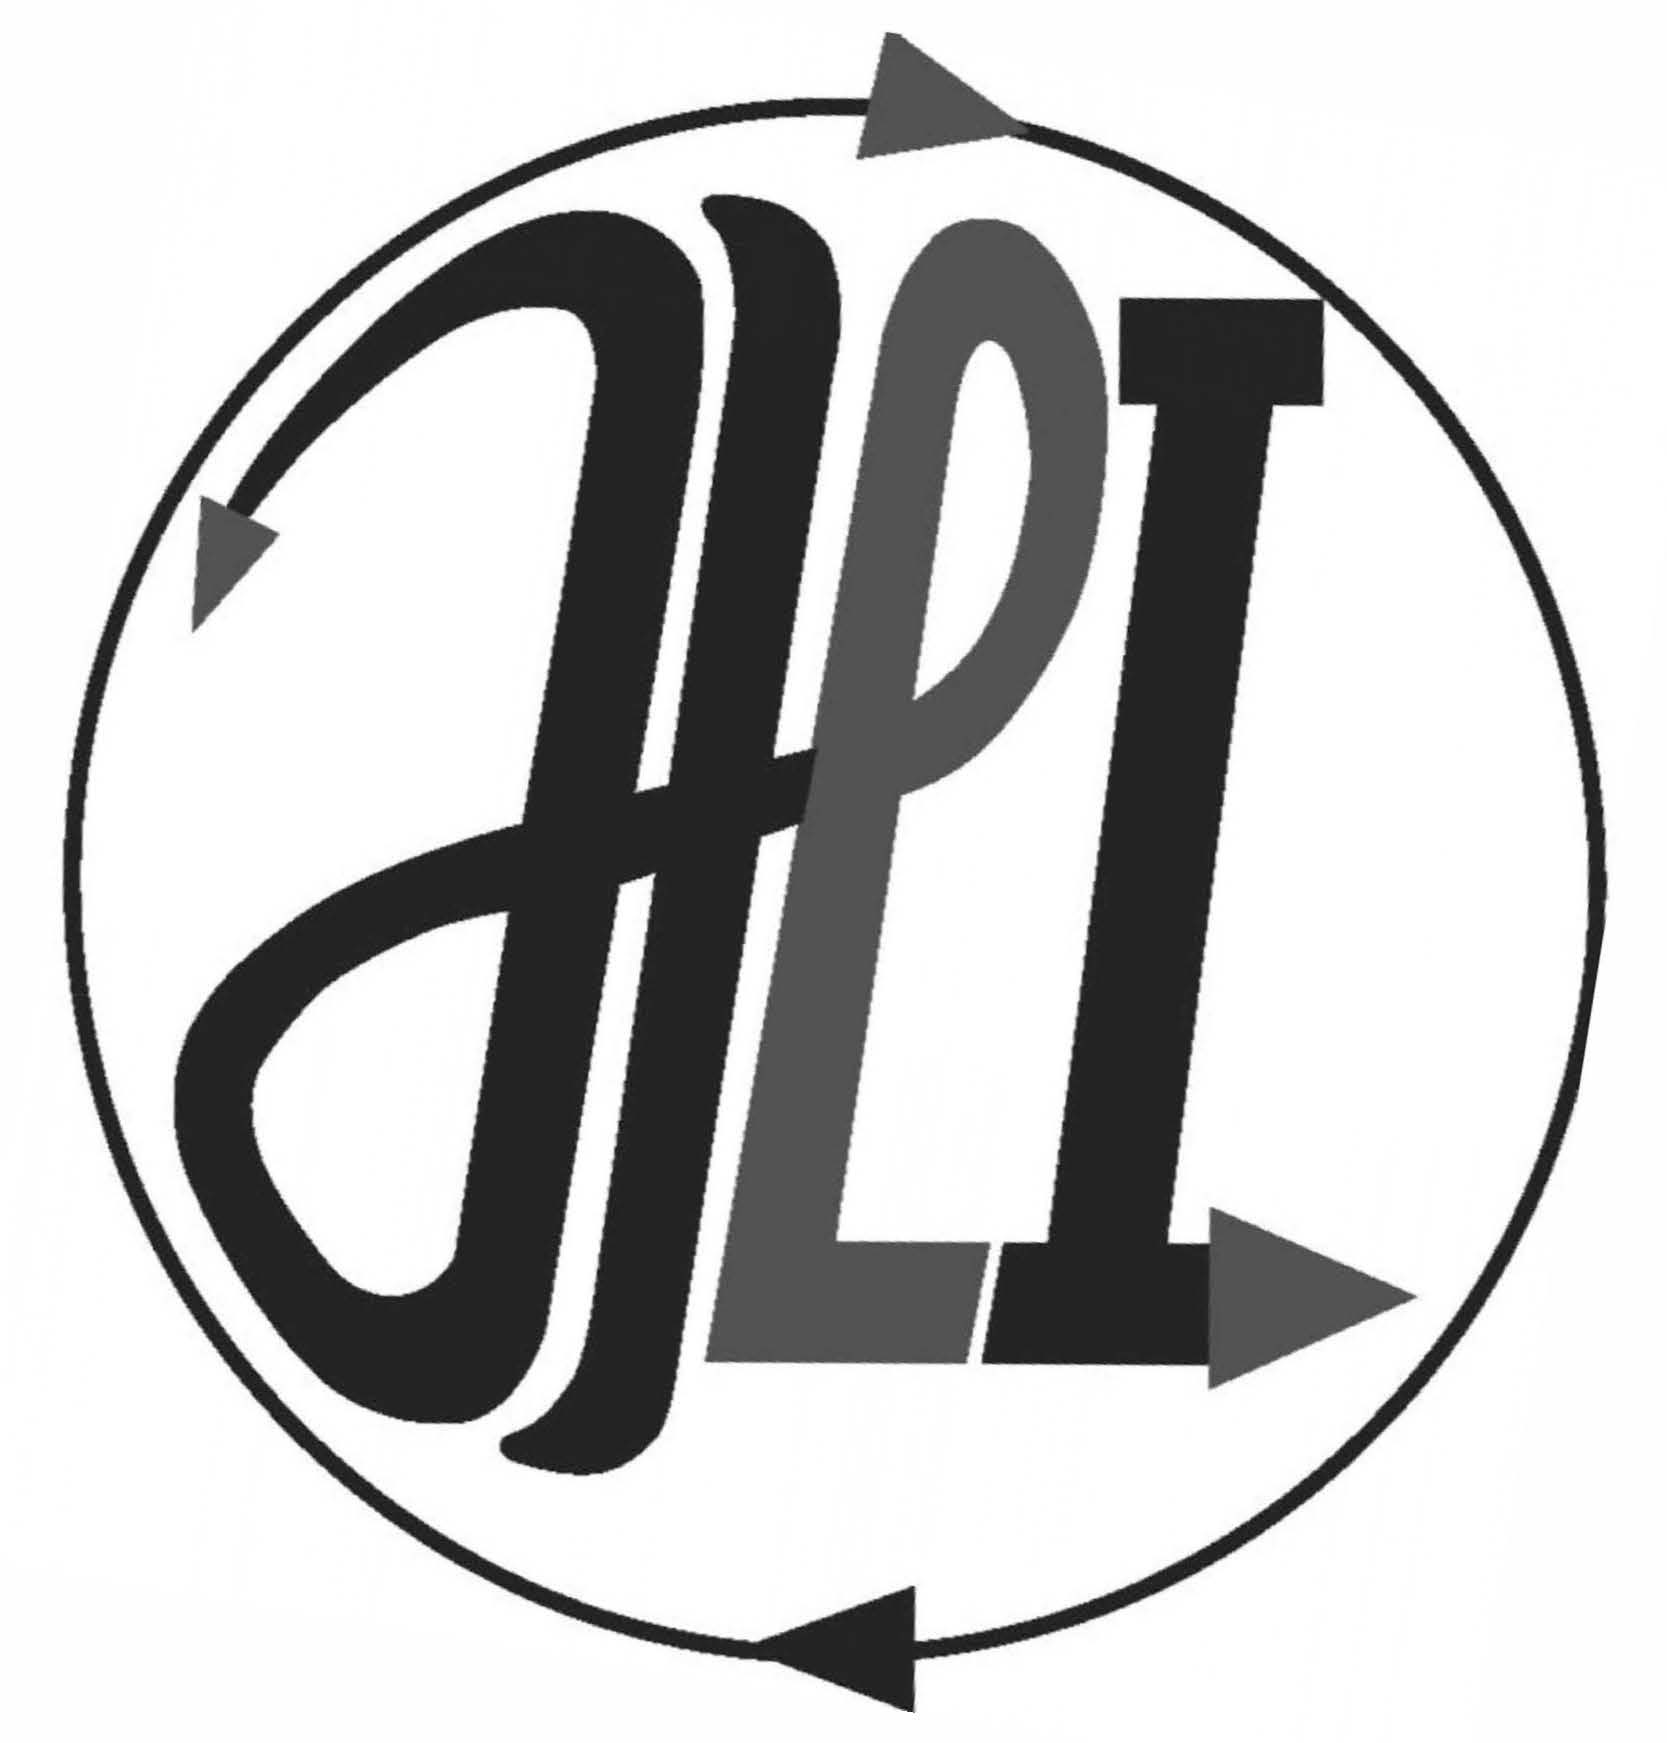 Hospitality+Logistics+International+-Logo+black+and+white.jpg